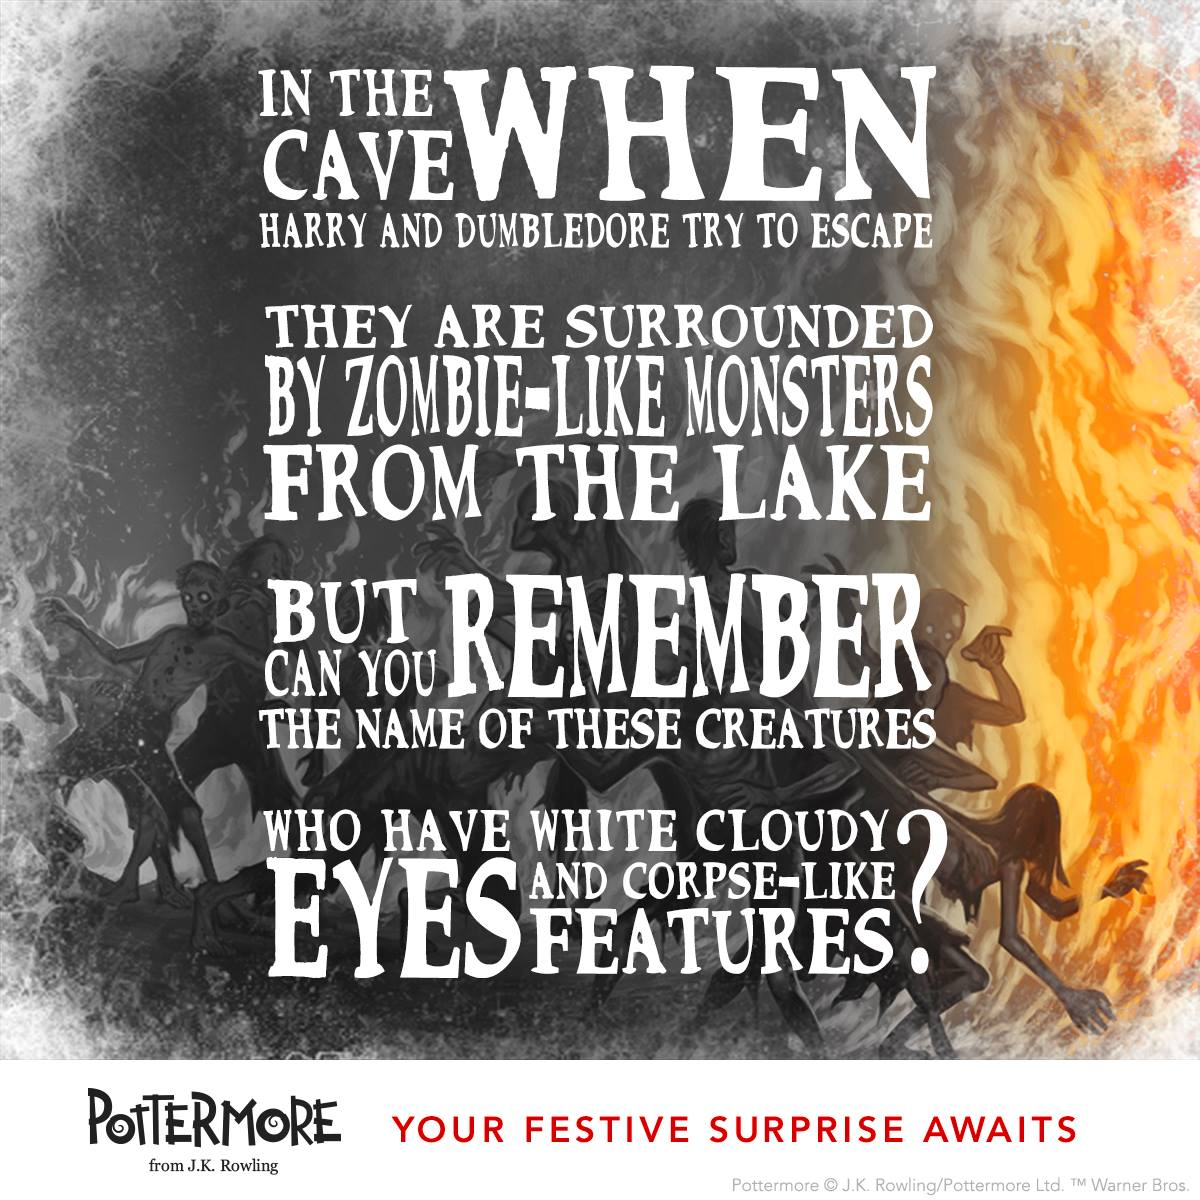 Day 10 of J.K. Rowling's Twelve Days of Christmas Harry Potter Moments